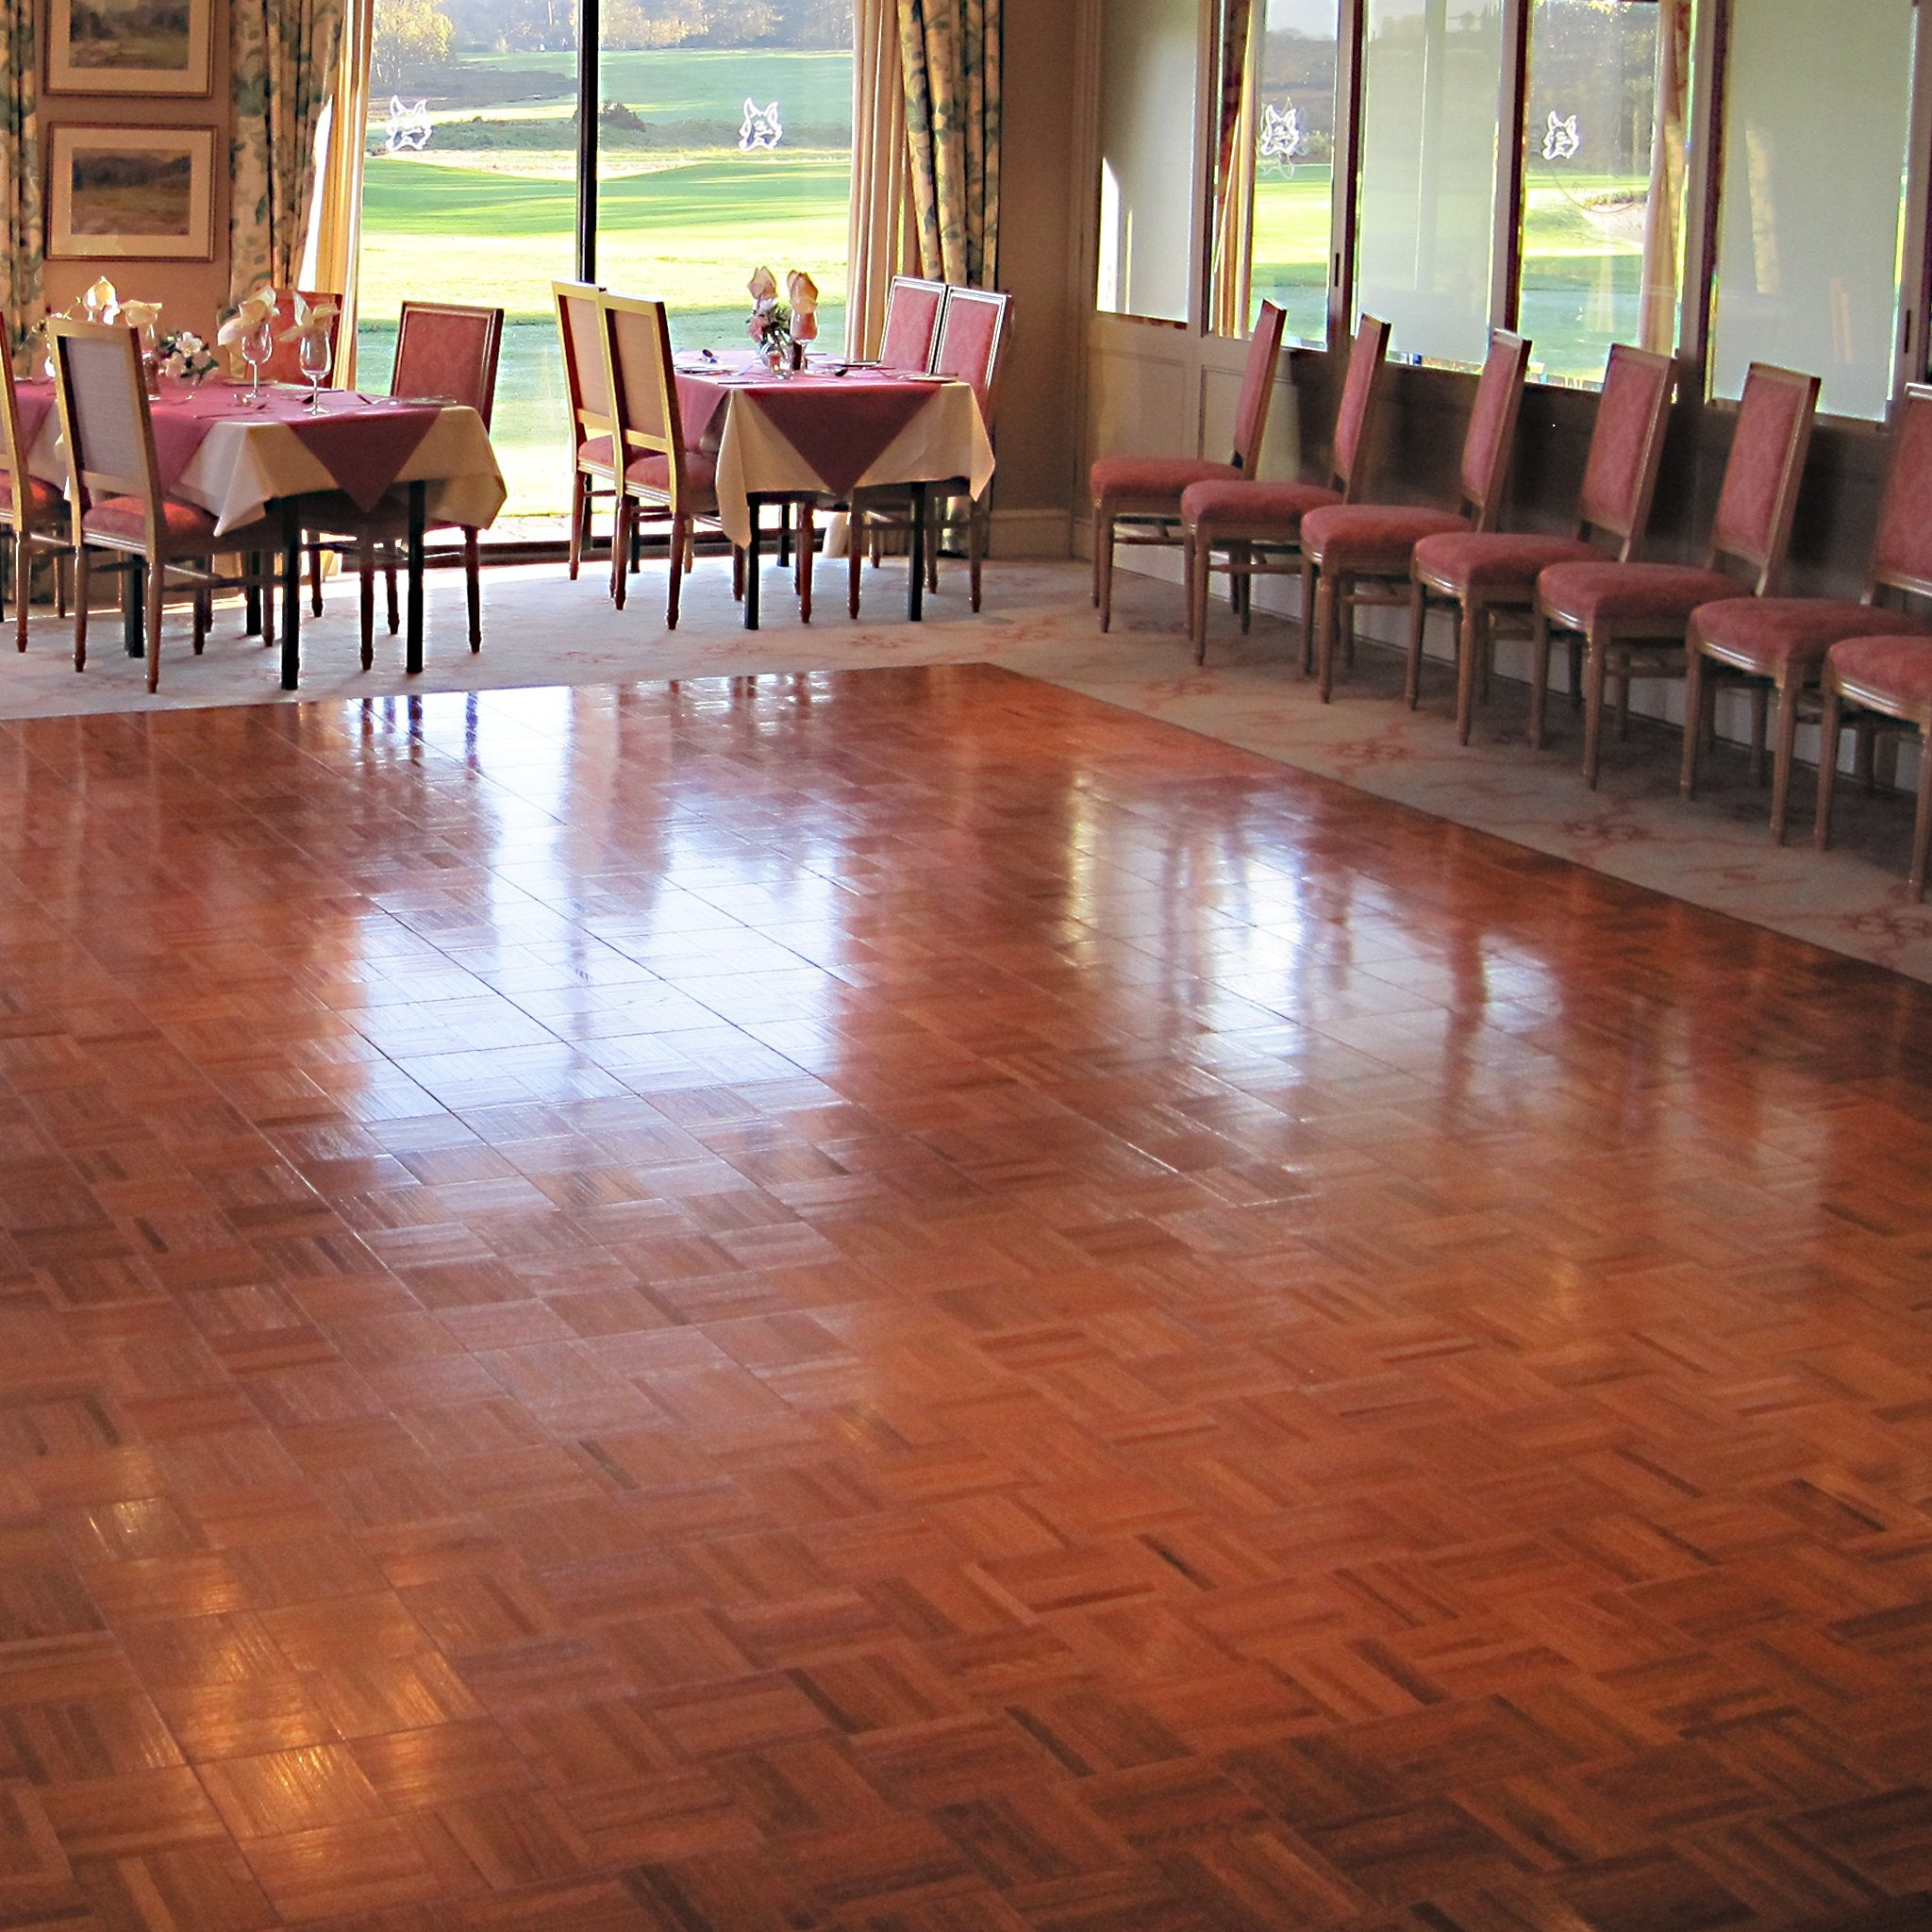 Signature DanceDeck Deluxe Flooring - Beautiful Dance Floor